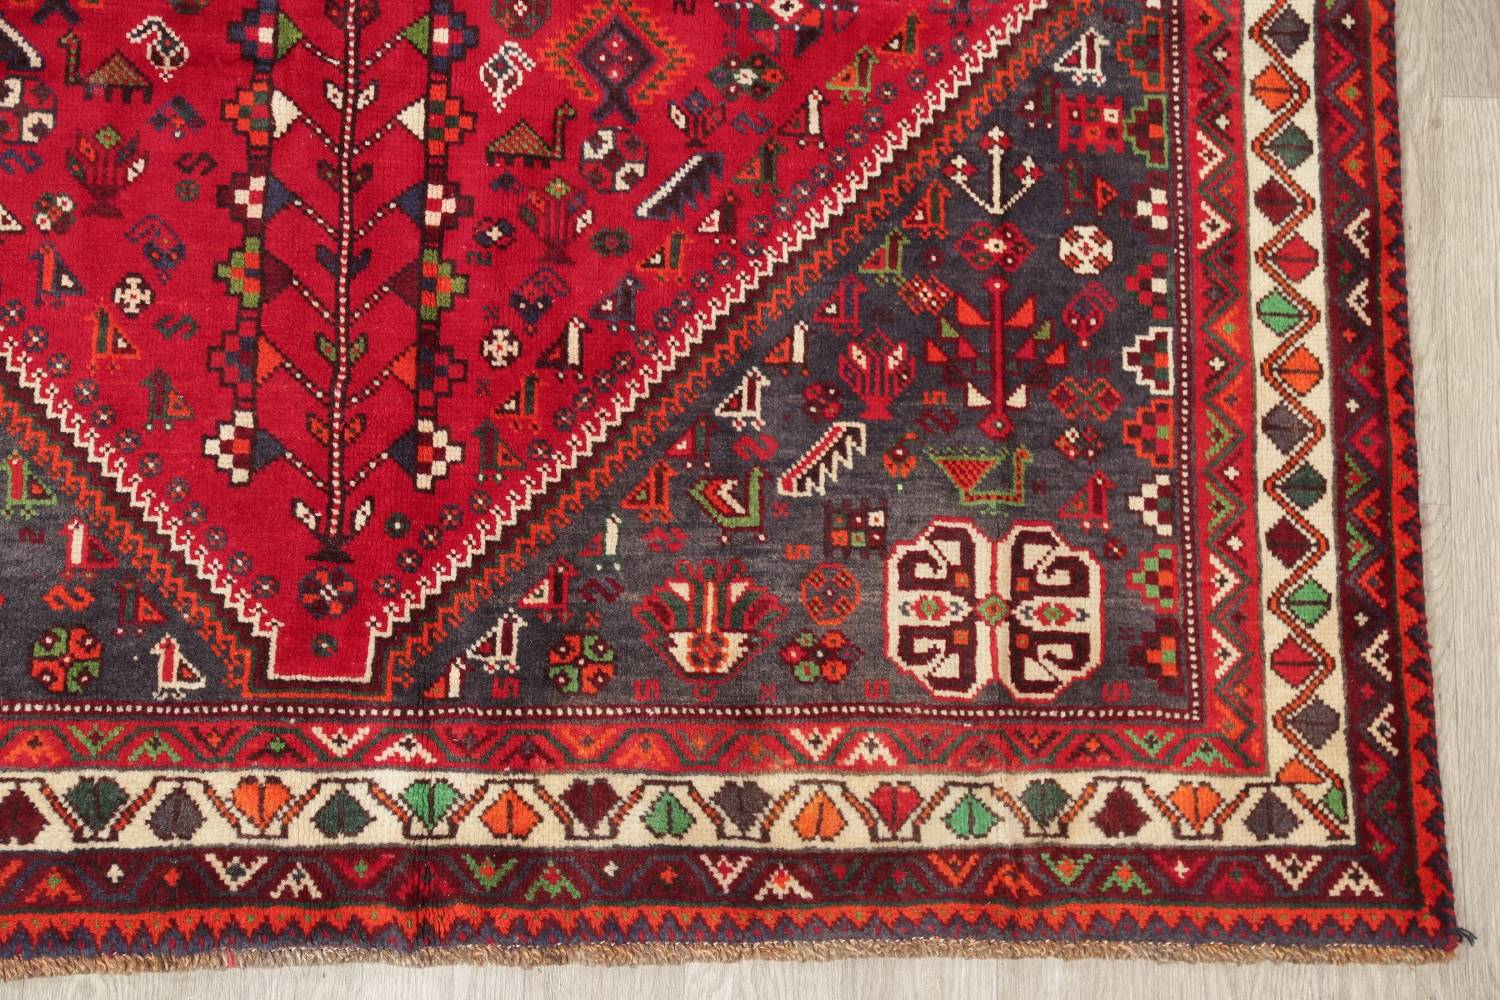 One-of-a-Kind Antique Tribal Shiraz Persian Hand-Knotted 7x10 Wool Area Rug image 20